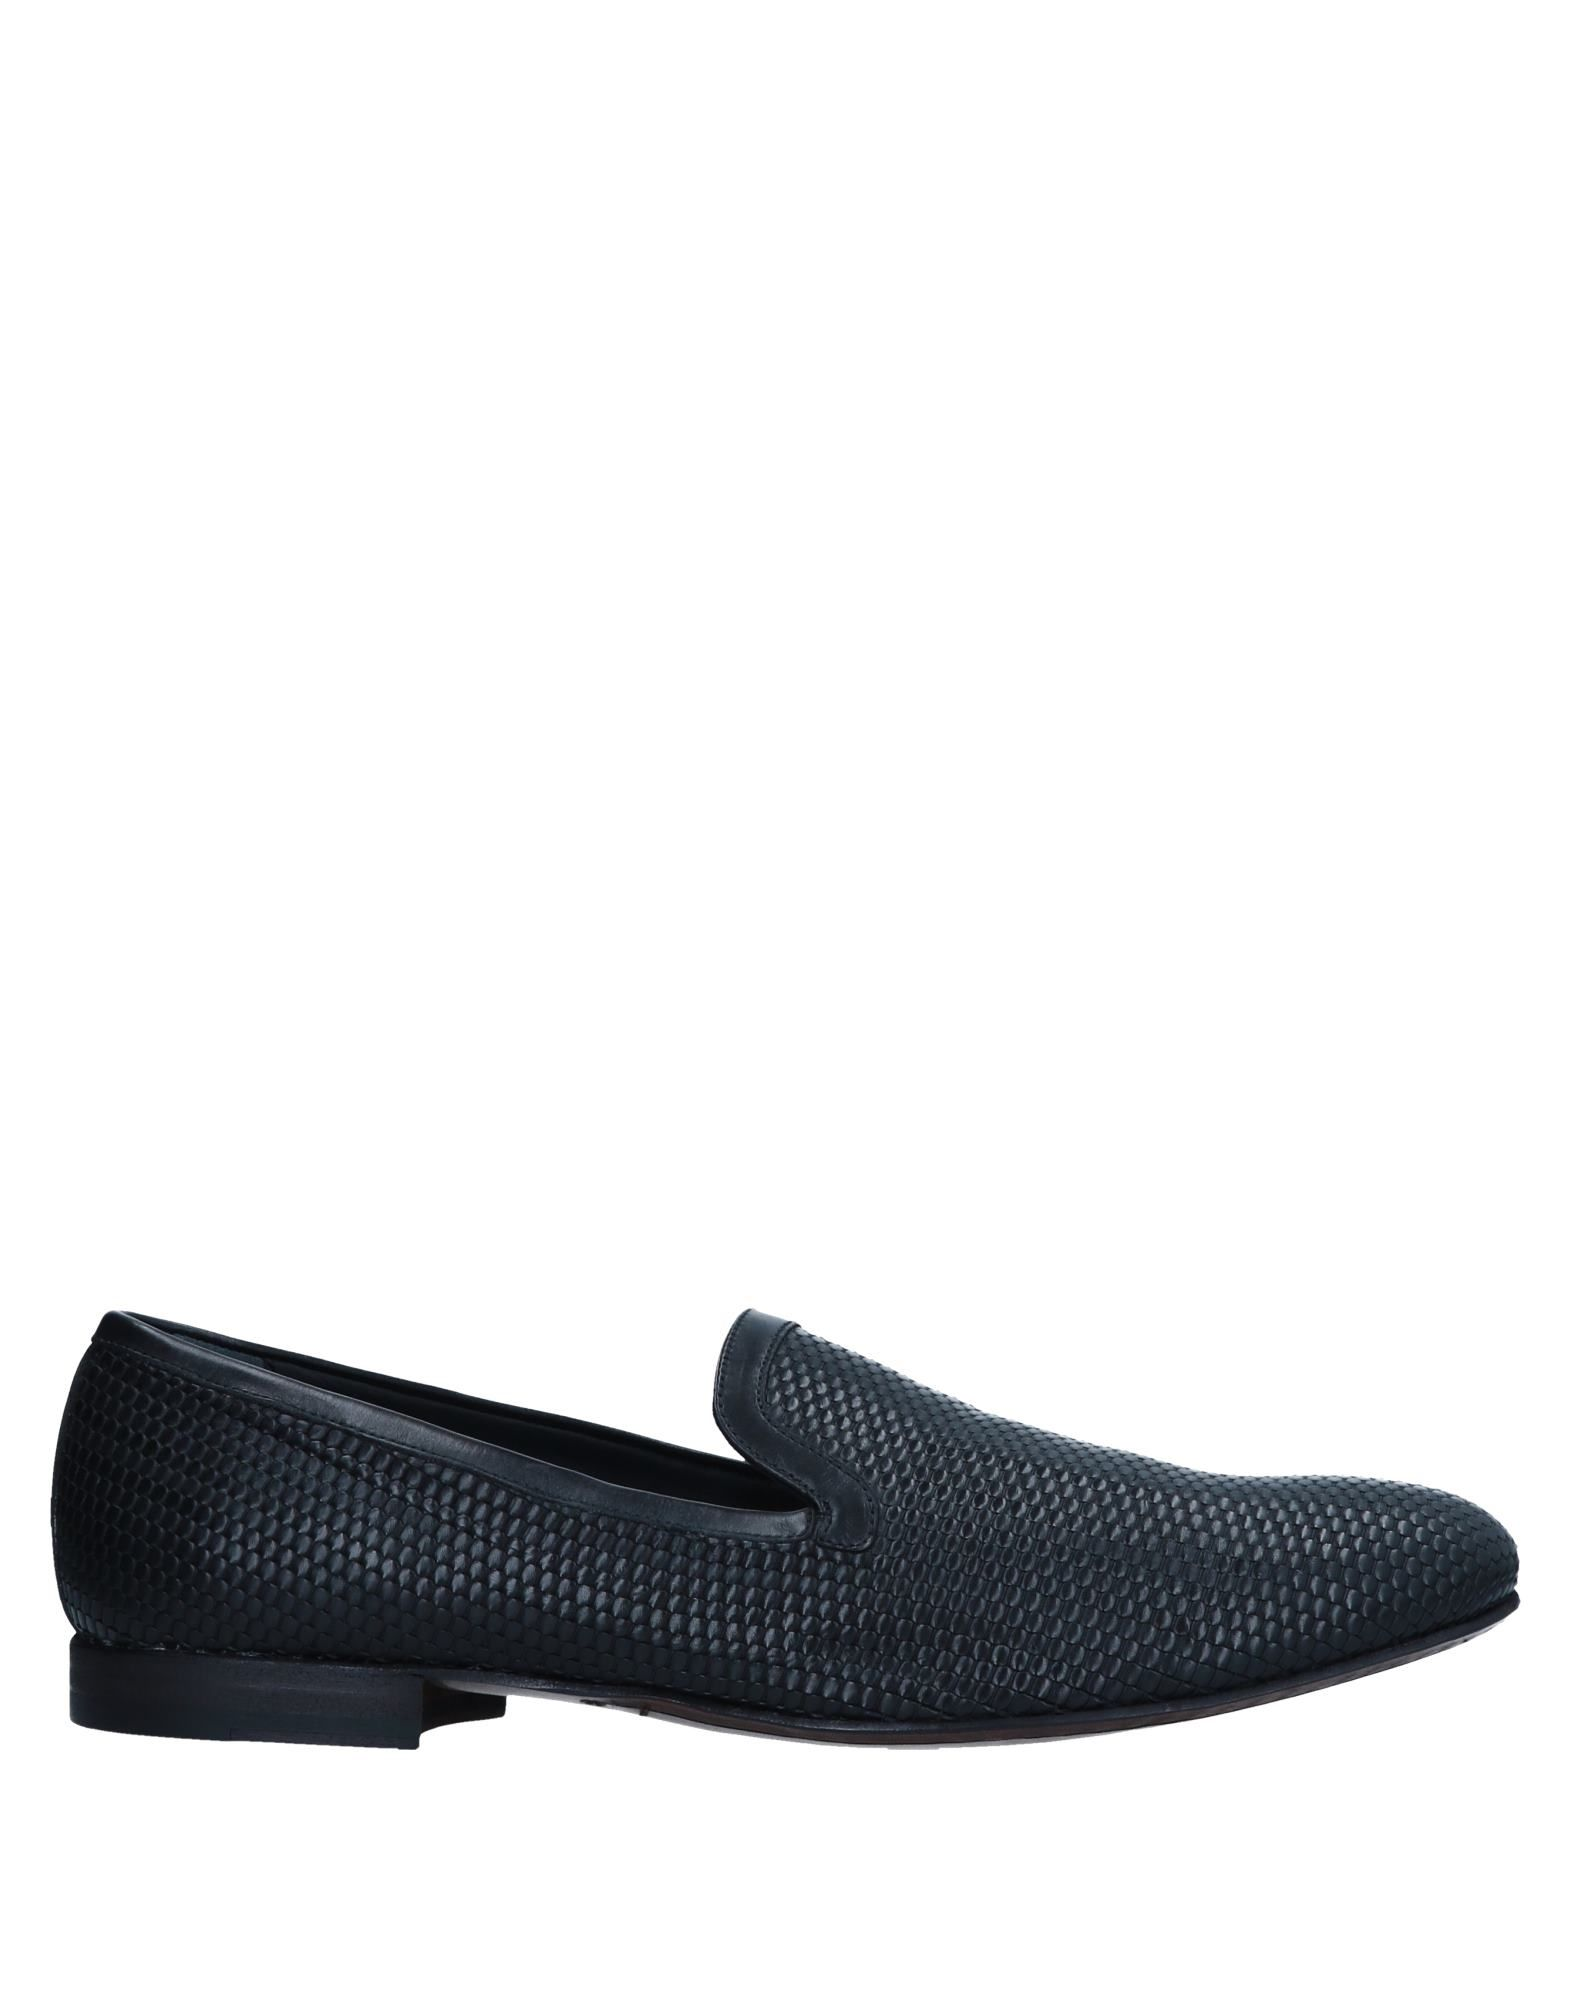 Alberto Guardiani Loafers - Men Alberto Guardiani Australia Loafers online on  Australia Guardiani - 11557725MG 81b0cb